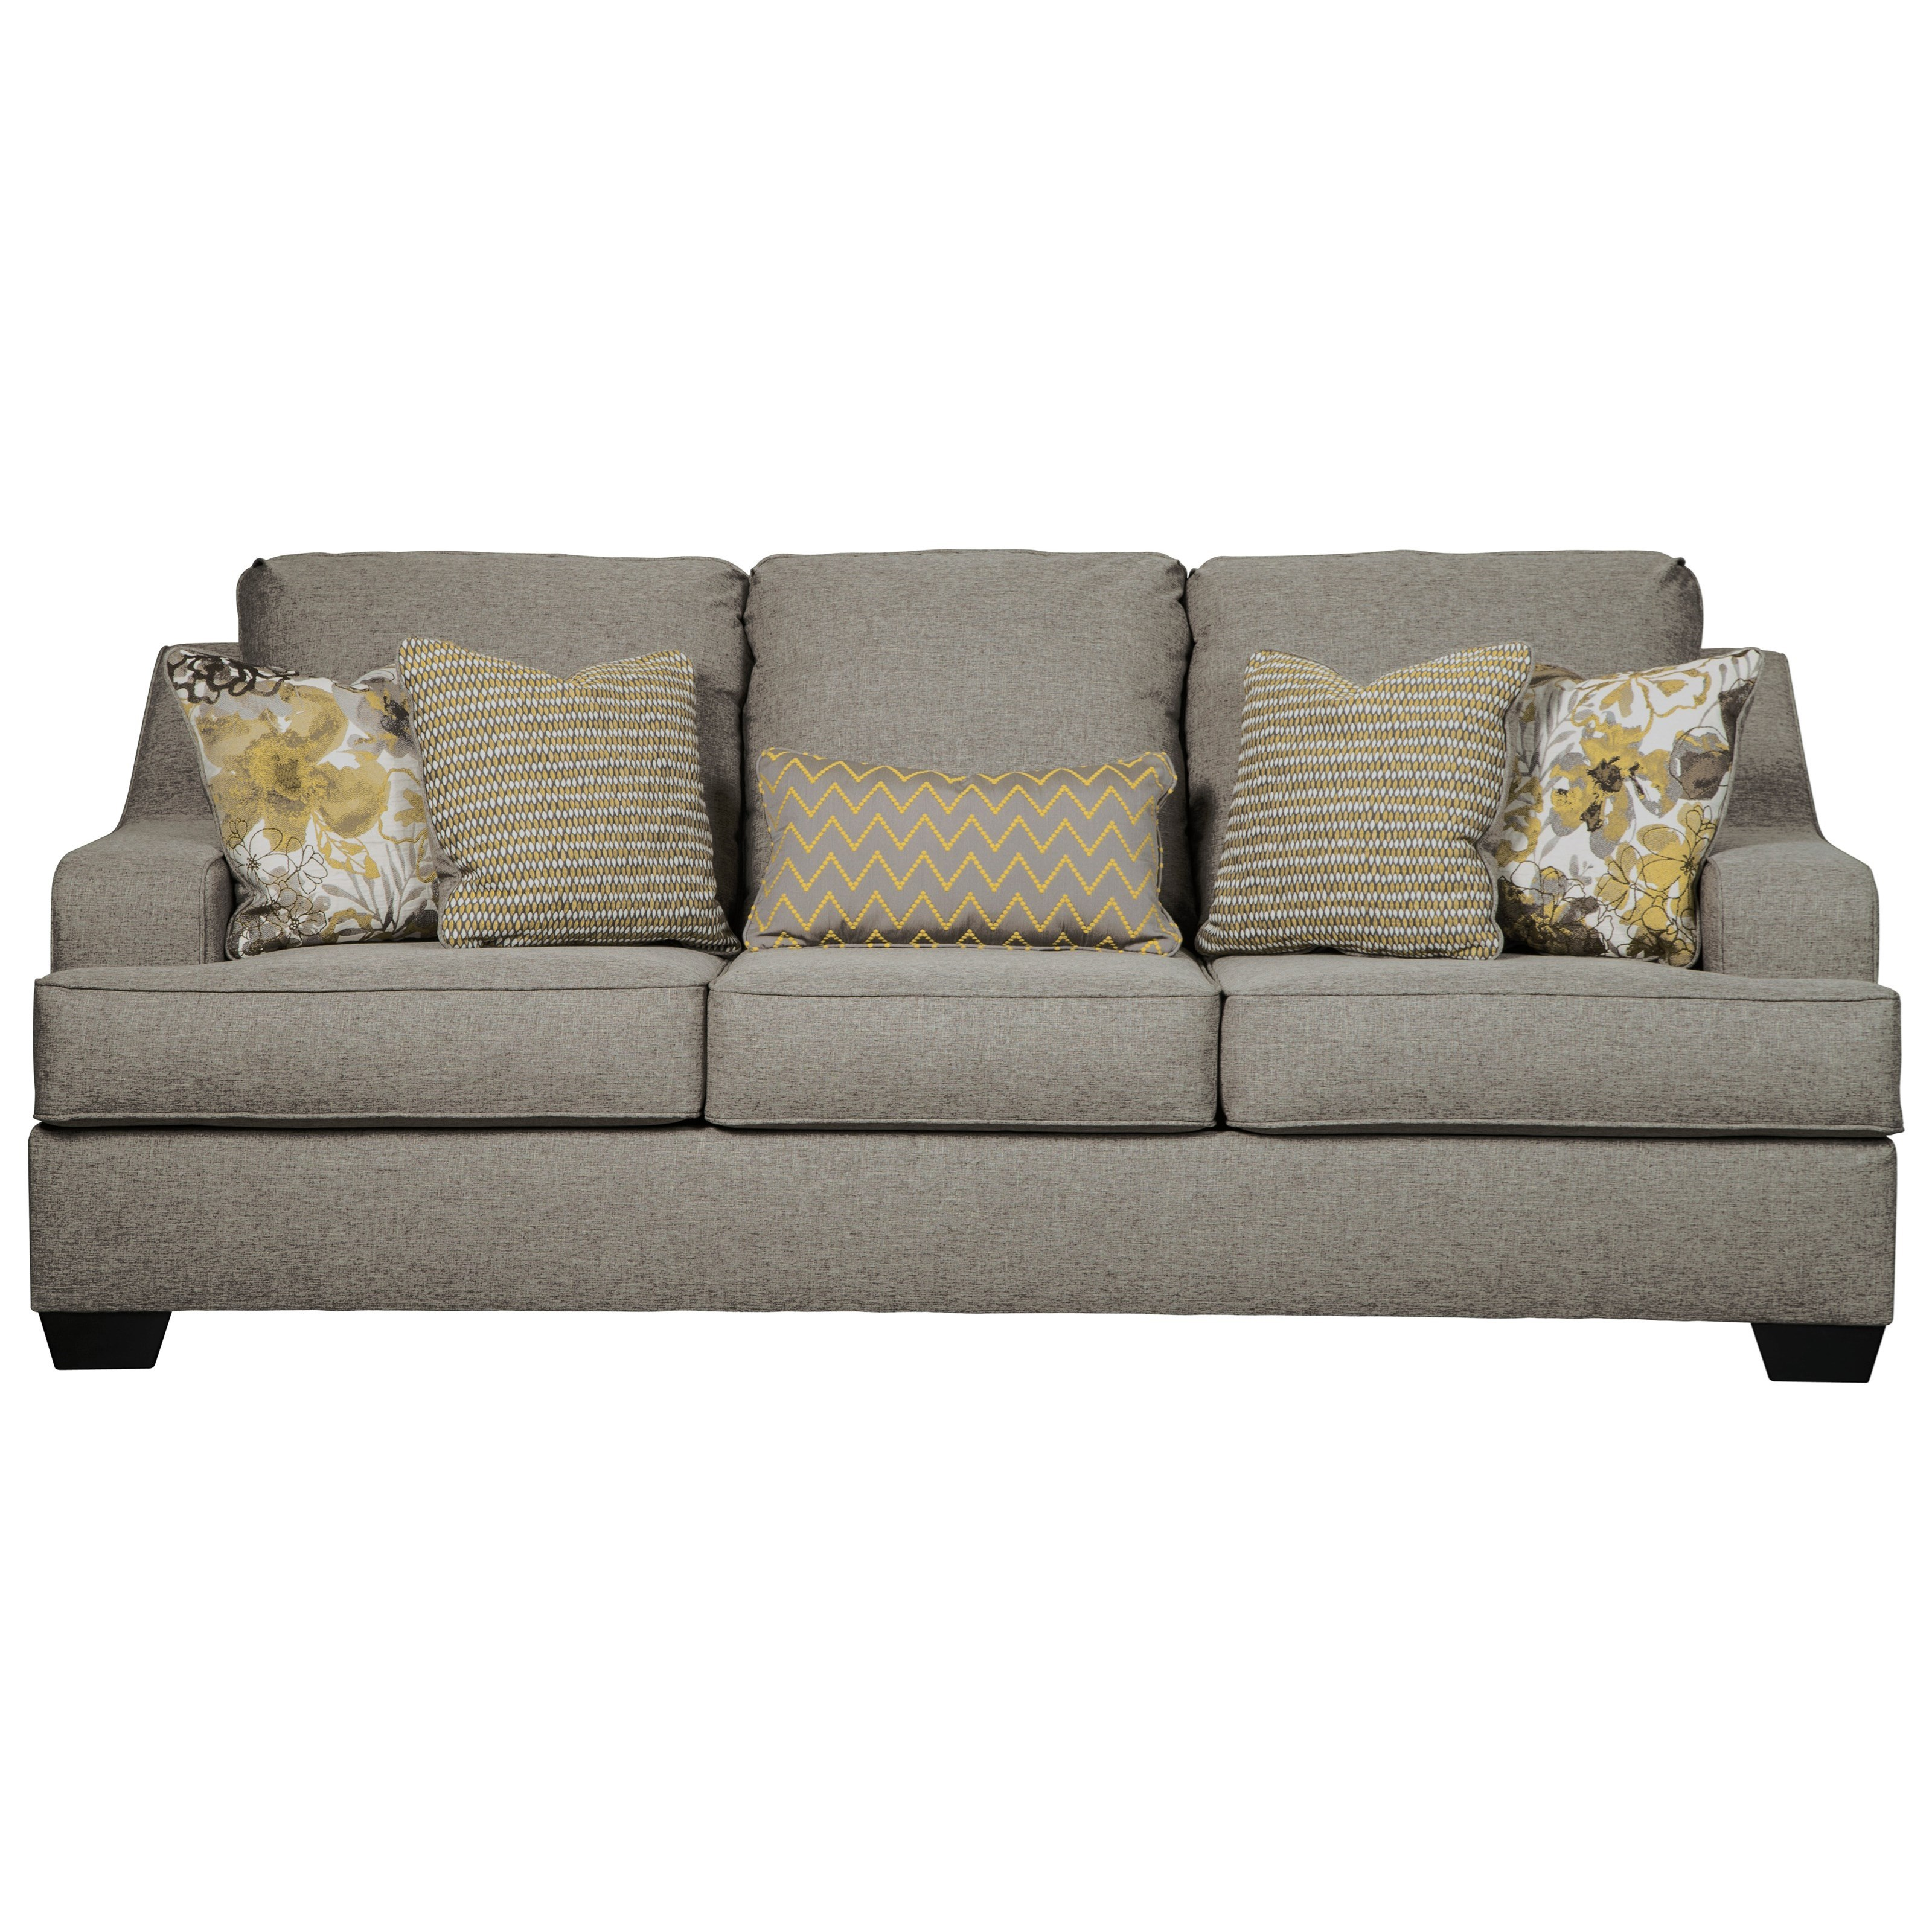 Benchcraft By Ashley Mandee Sofa With Contemporary Style Royal